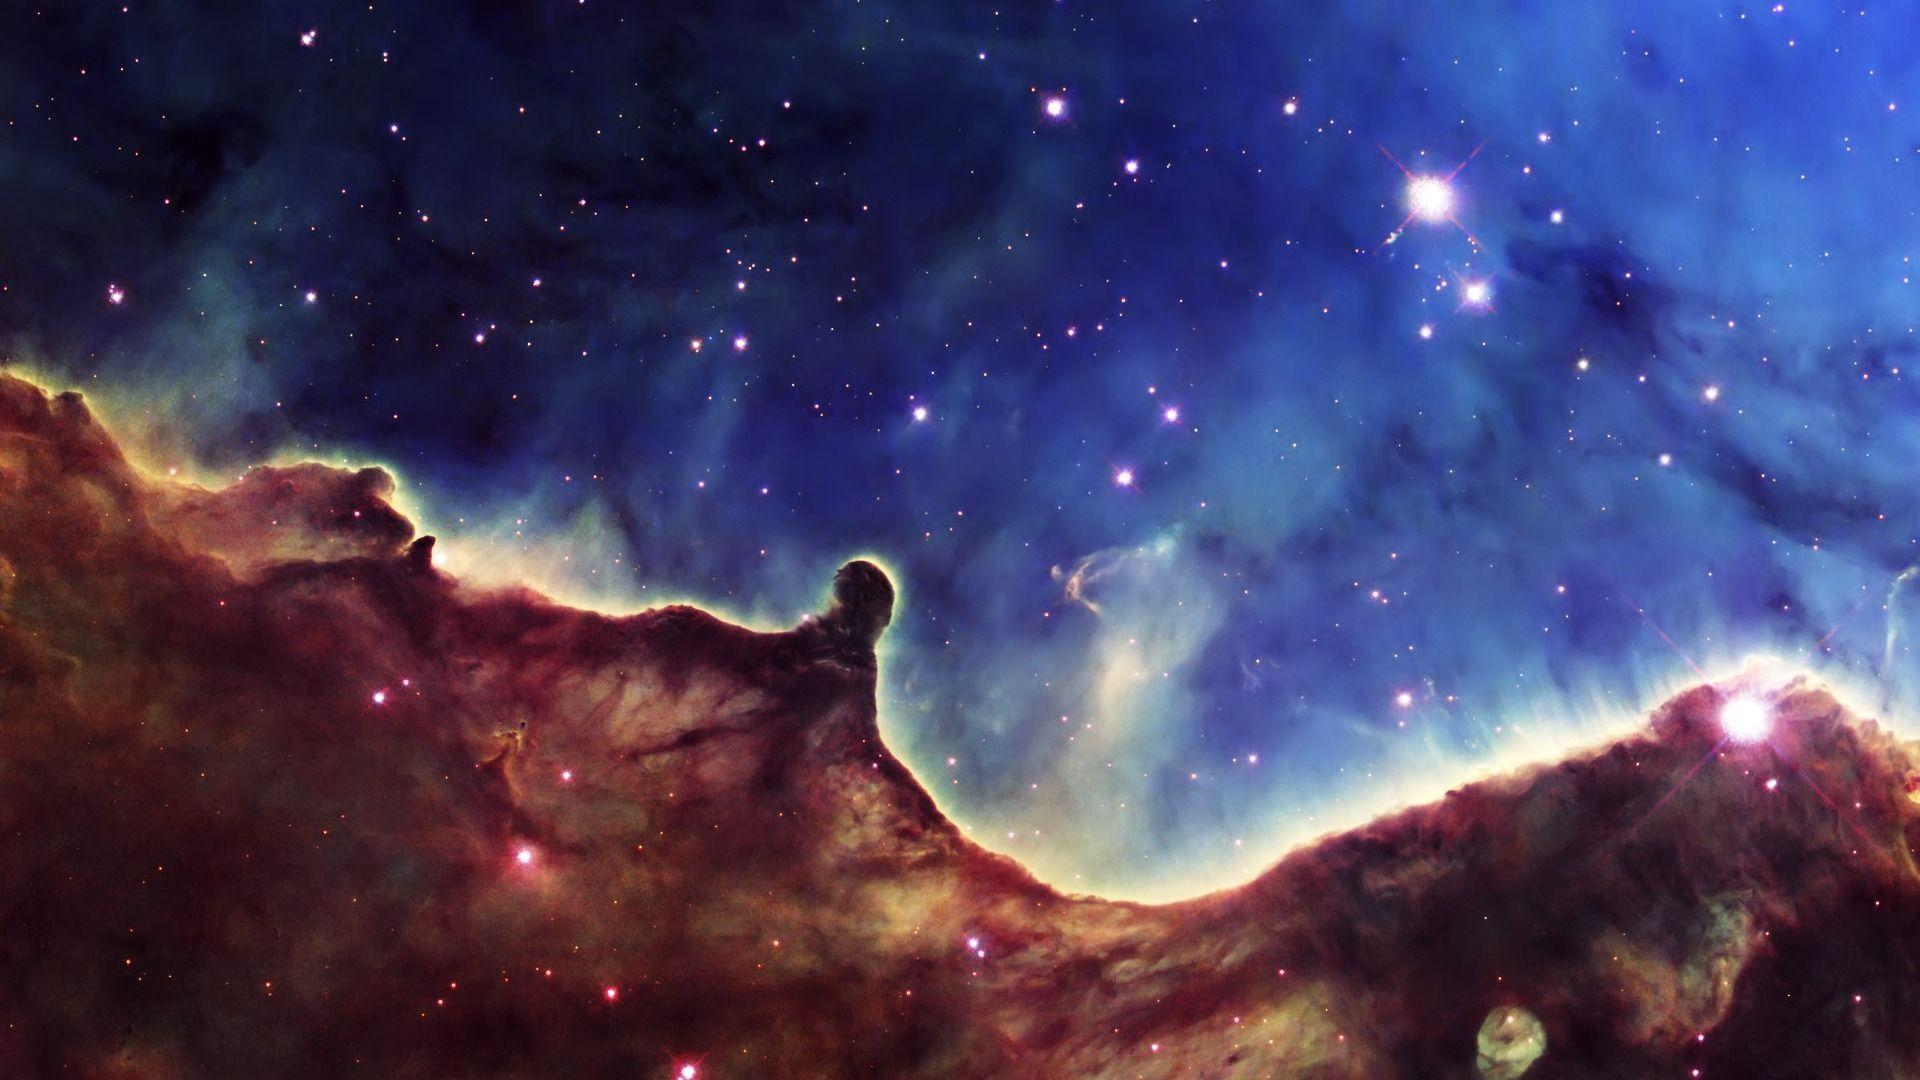 Hubble Space Telescope Images Wallpaper Images & Pictures ...